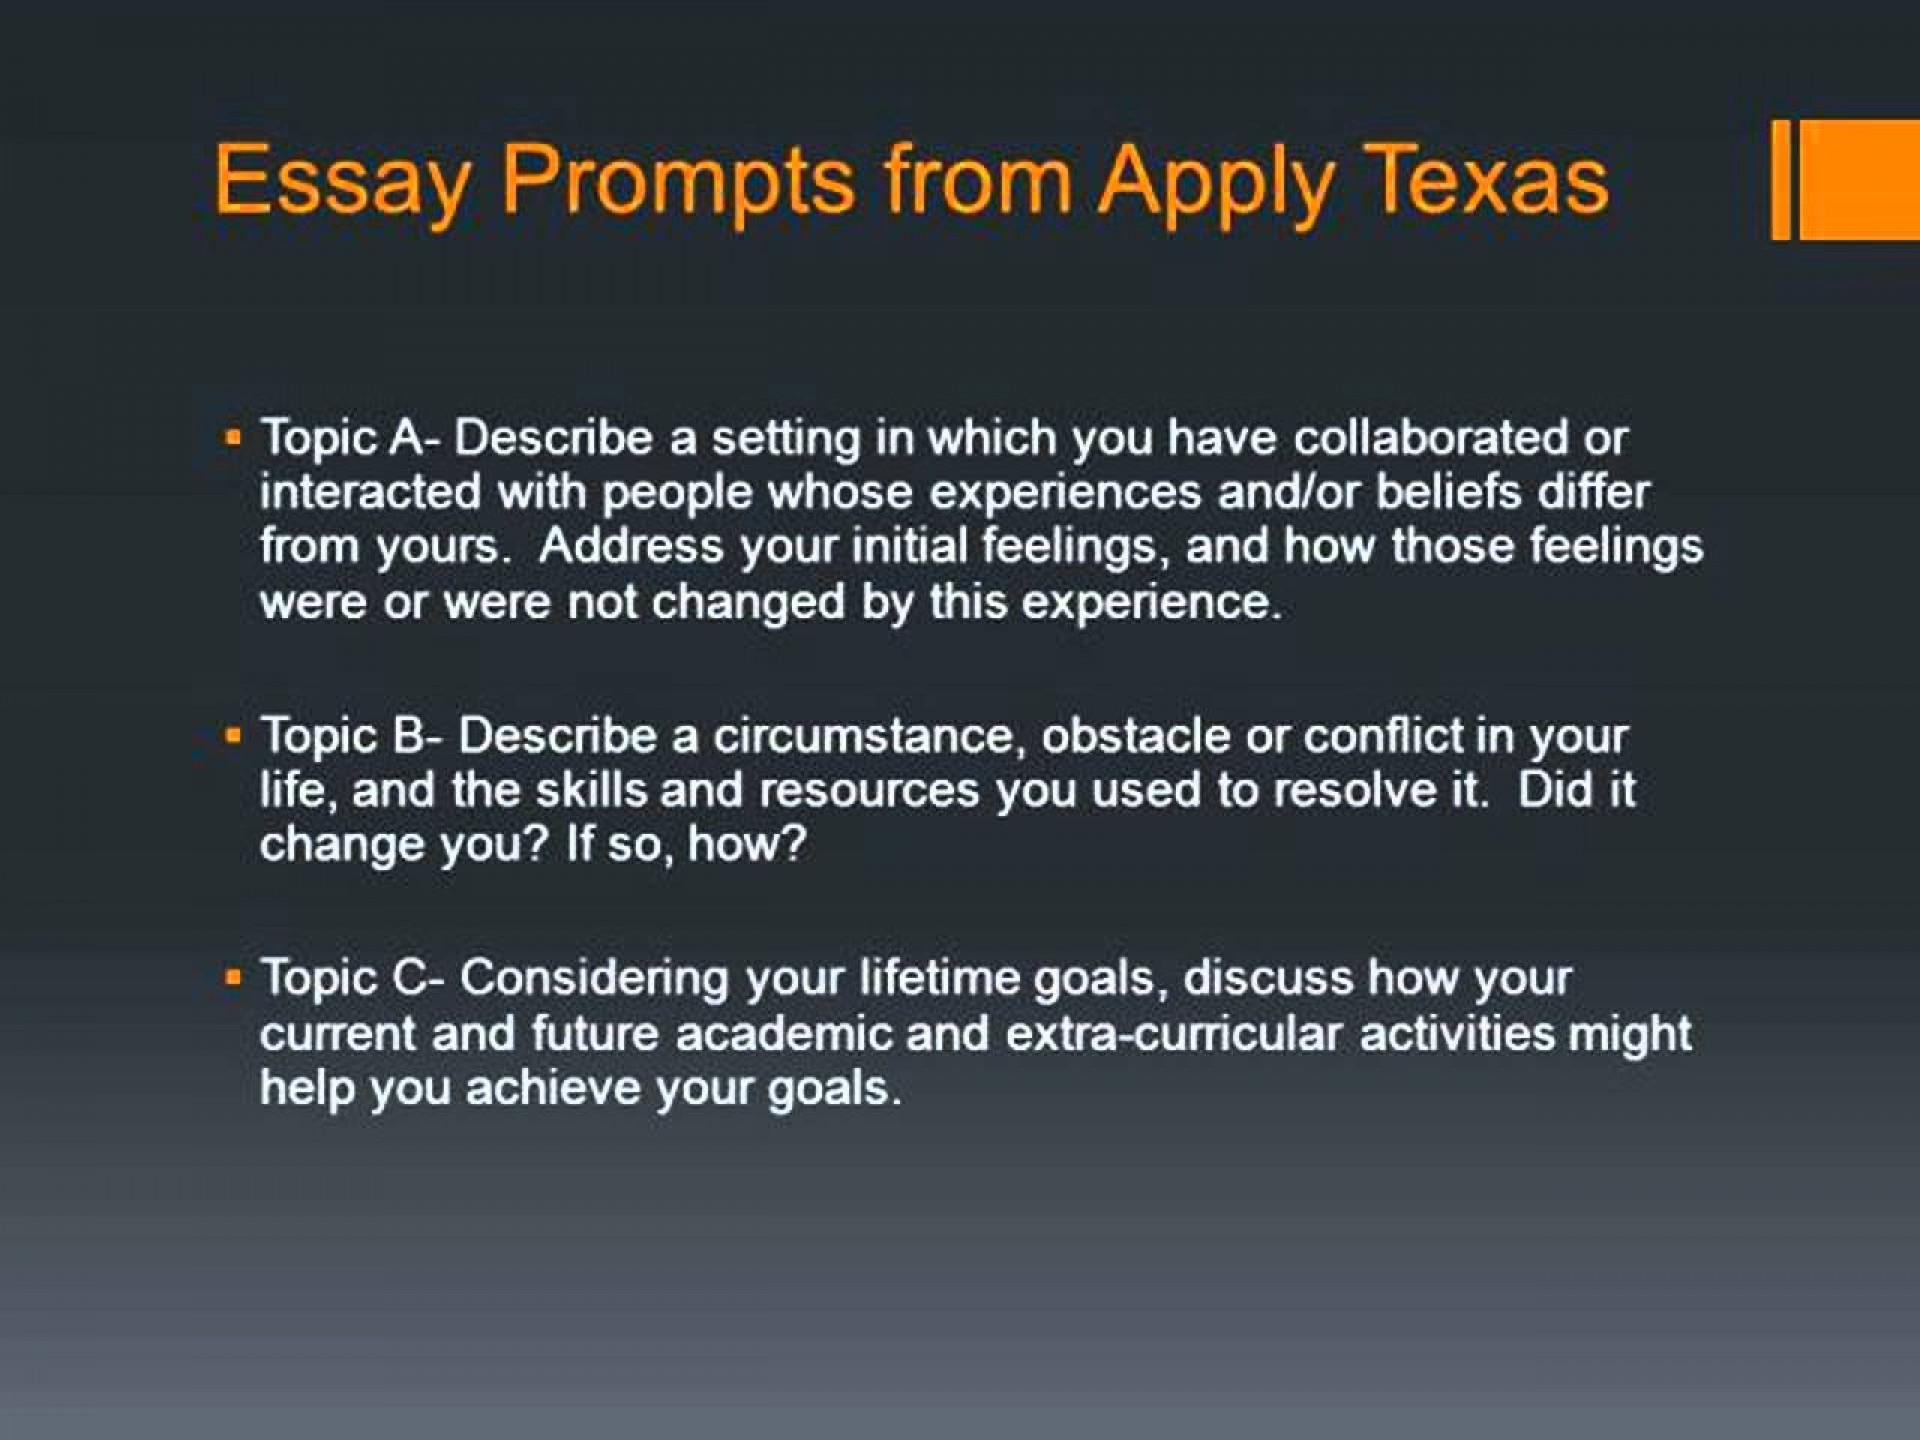 002 Apply Texas Essay Prompts Youtube Topic Examples Maxresde Example Wonderful Applytexas 2018 Prompt C 1920